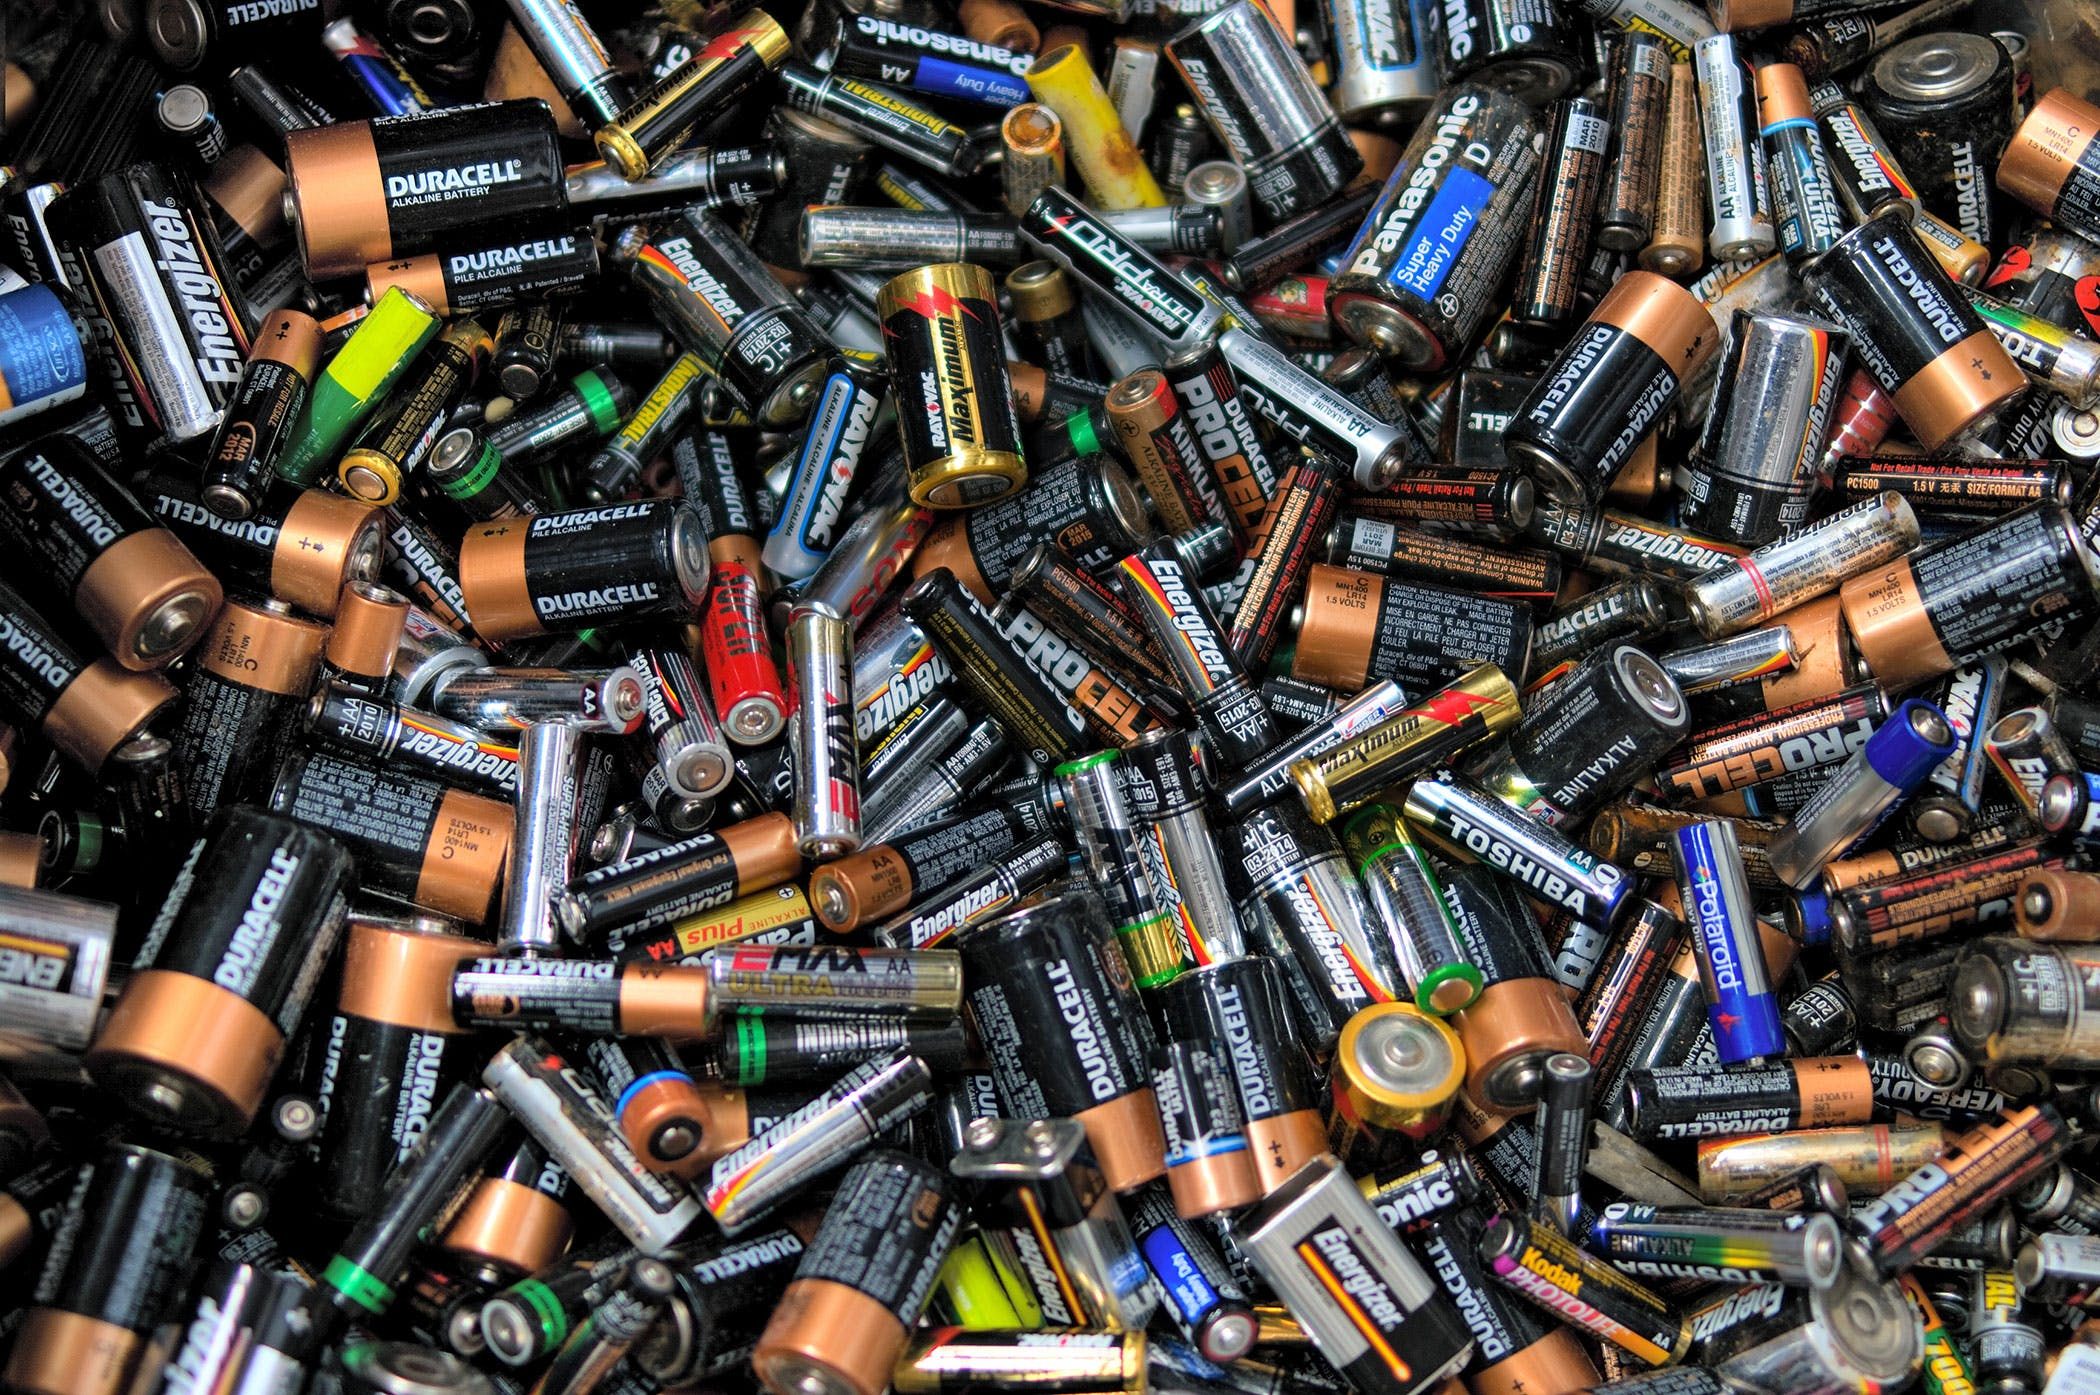 Battery Poisoning in Dogs - Symptoms, Causes, Diagnosis, Treatment